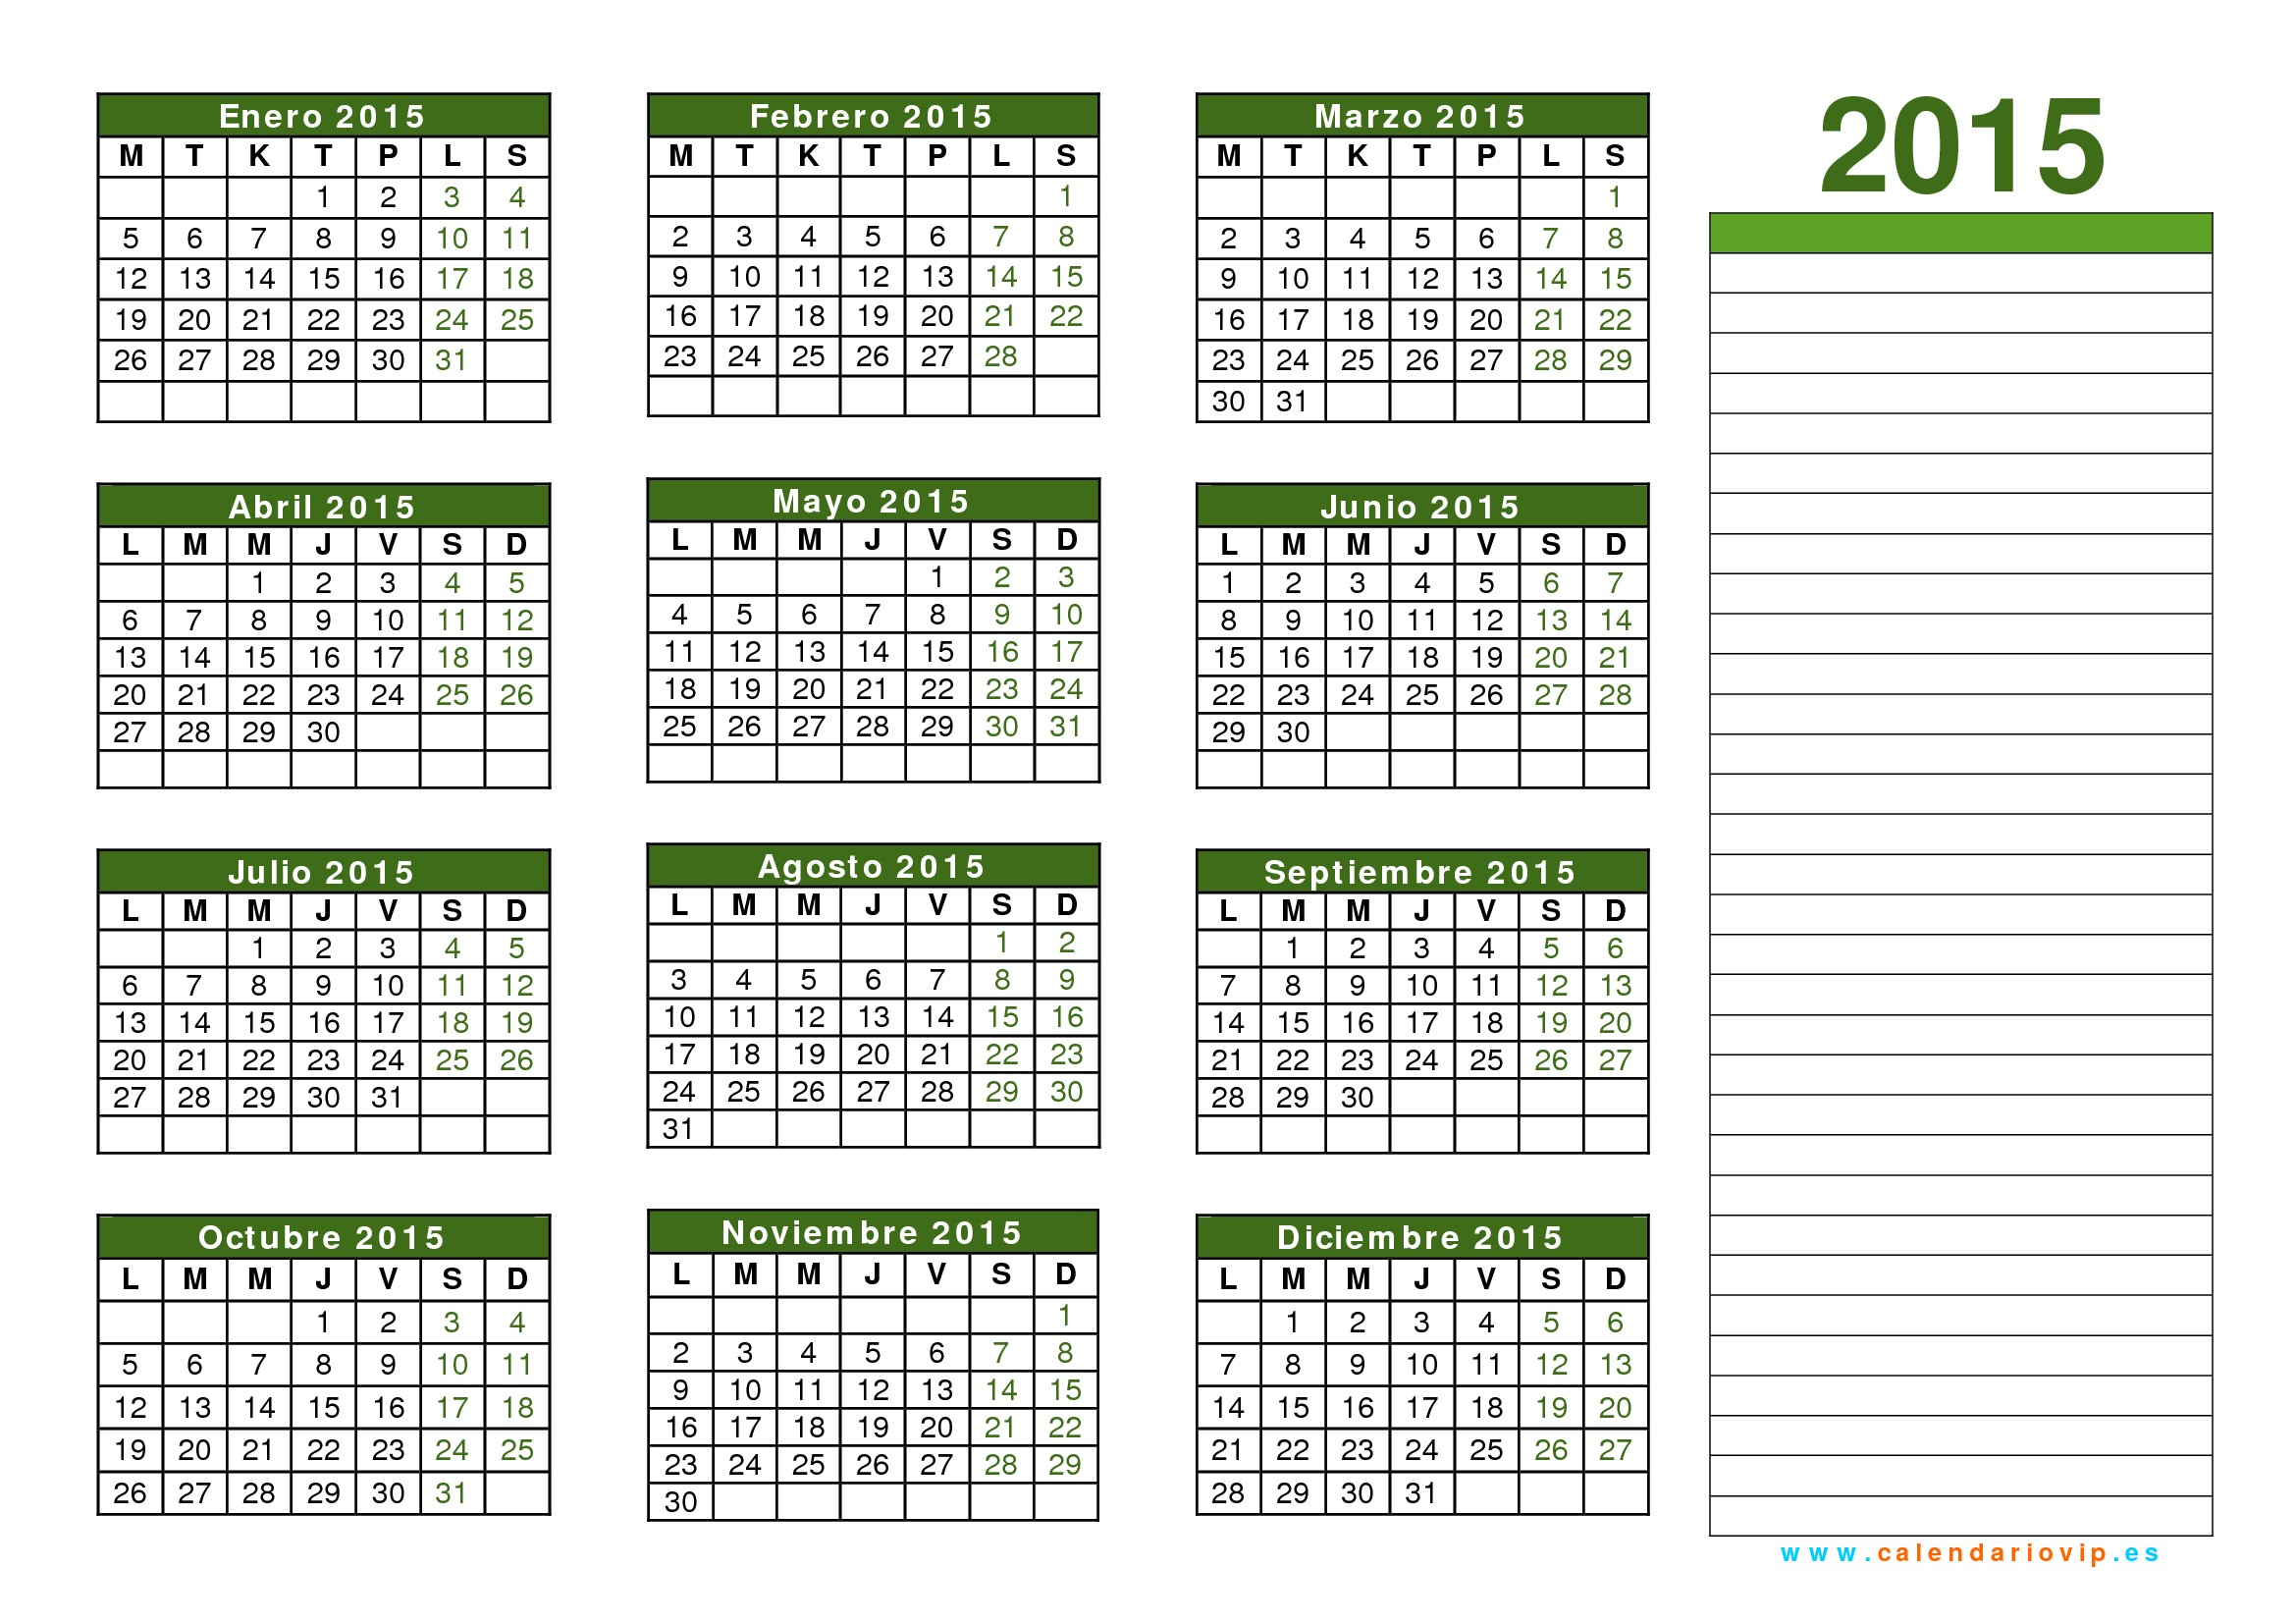 Calendario 2019 Enero Zbinden Iii Más Reciente Download 2019 Calendar Printable with Holidays List